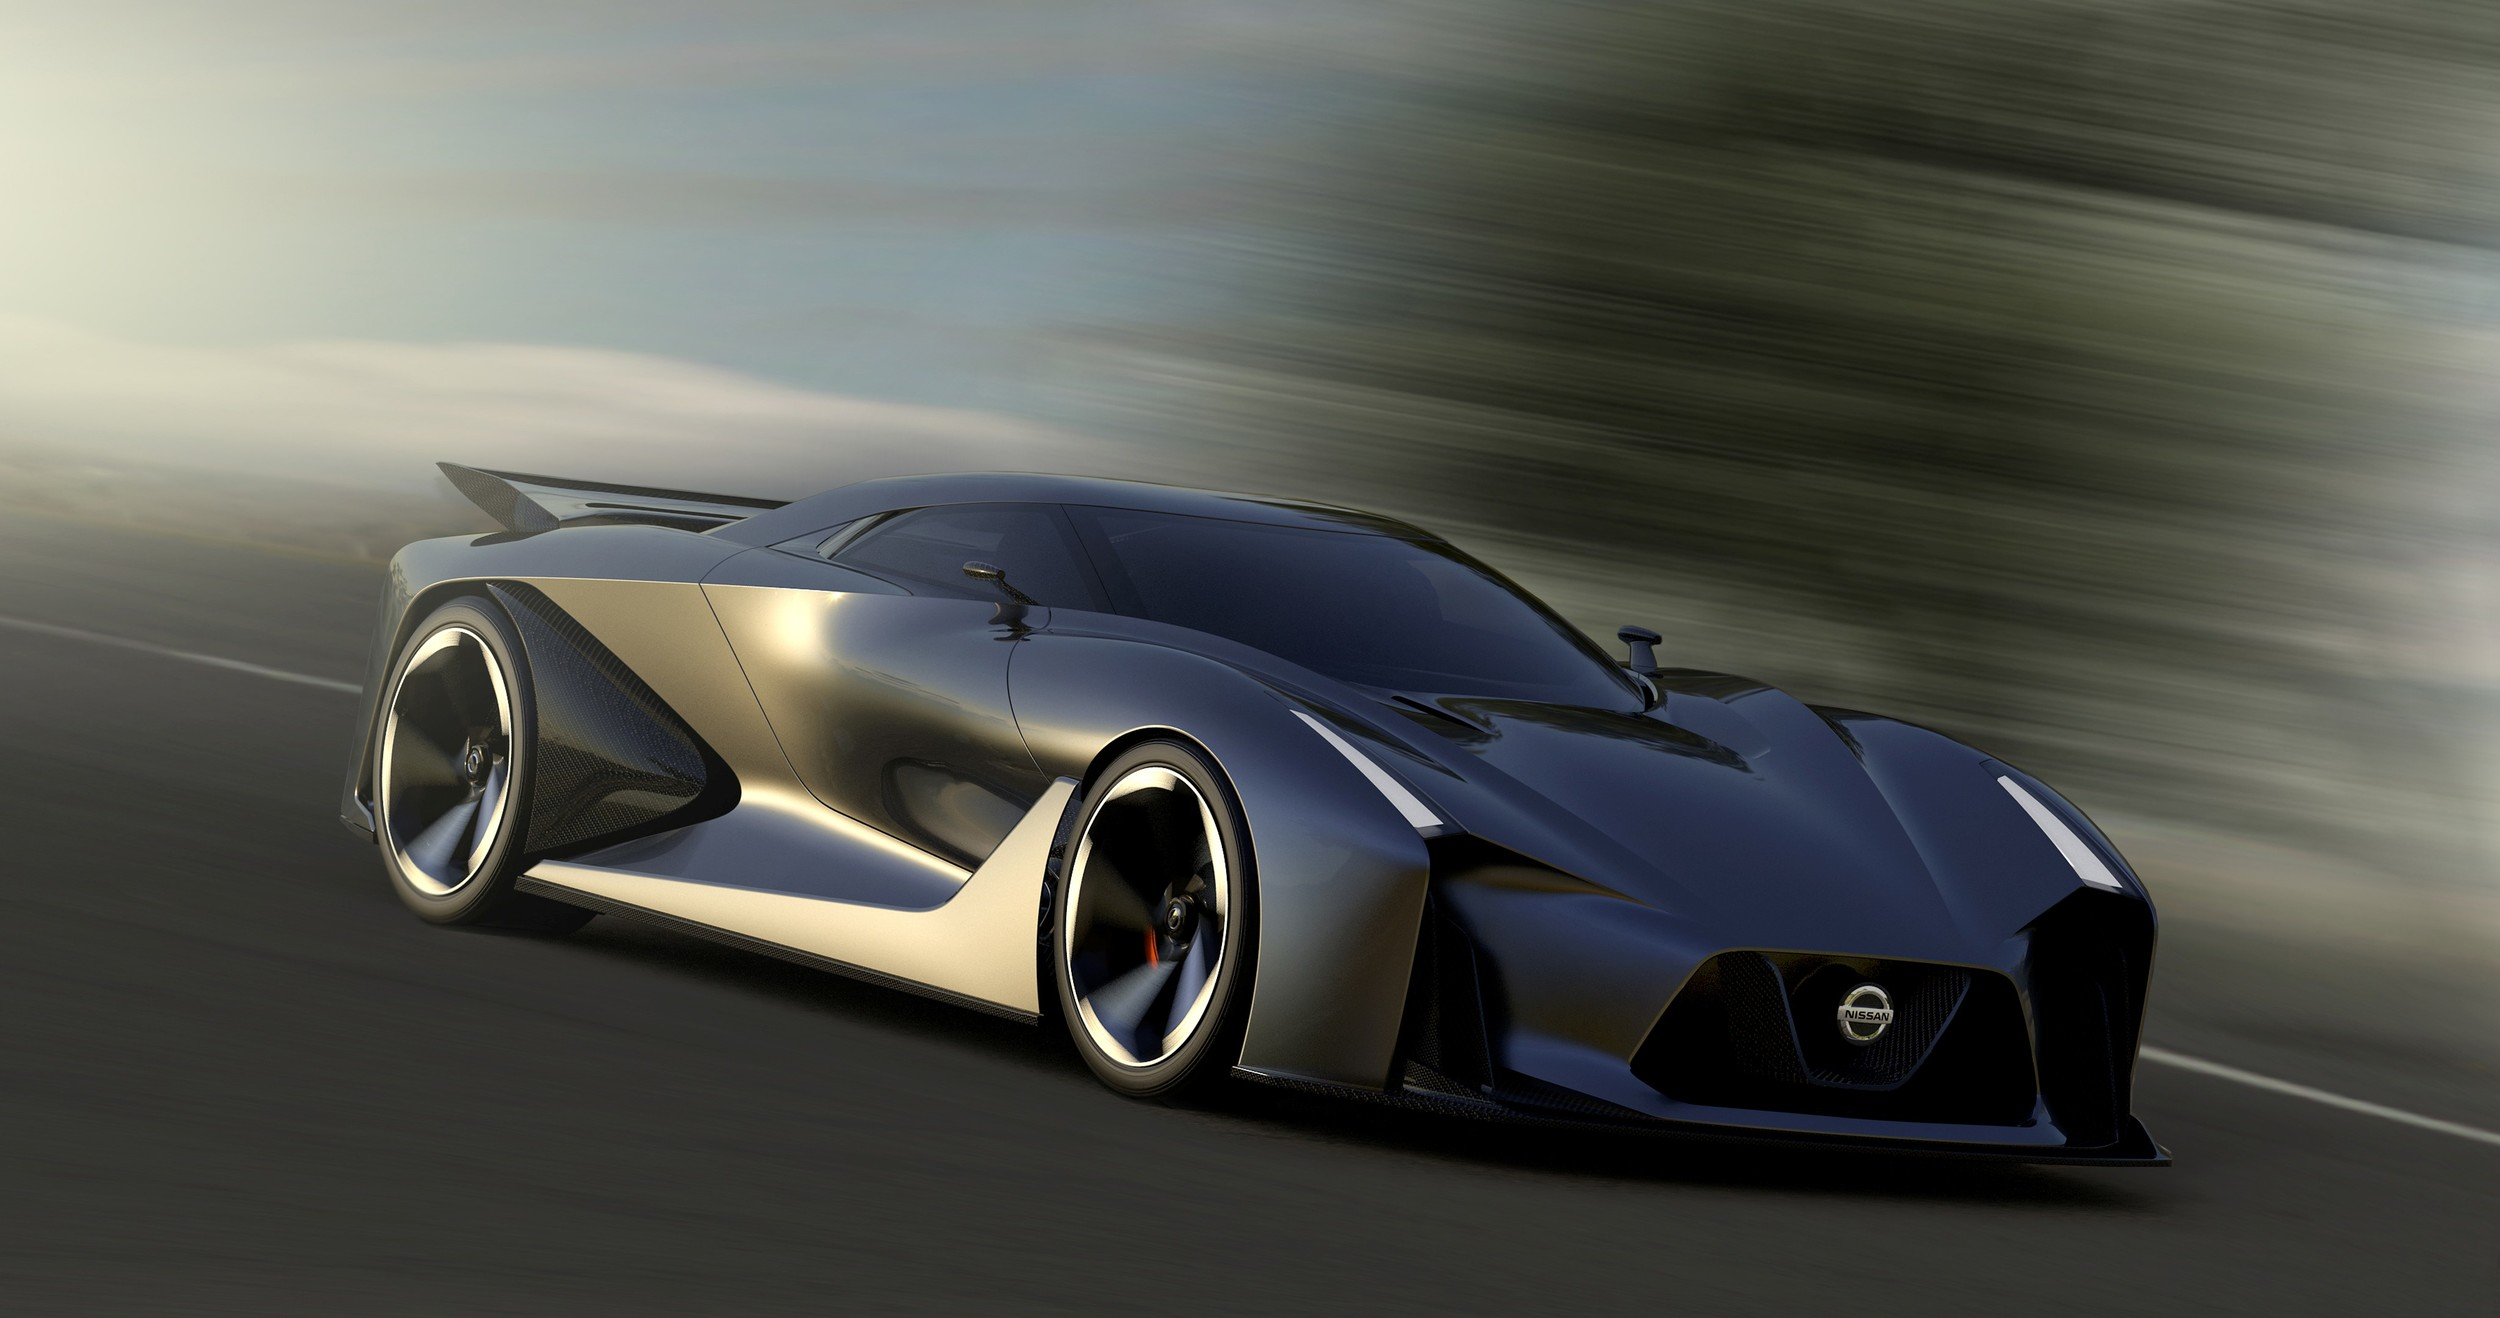 2014_Nissan_Concept_2020_Vision_Gran_Turismo_012_3671.jpg